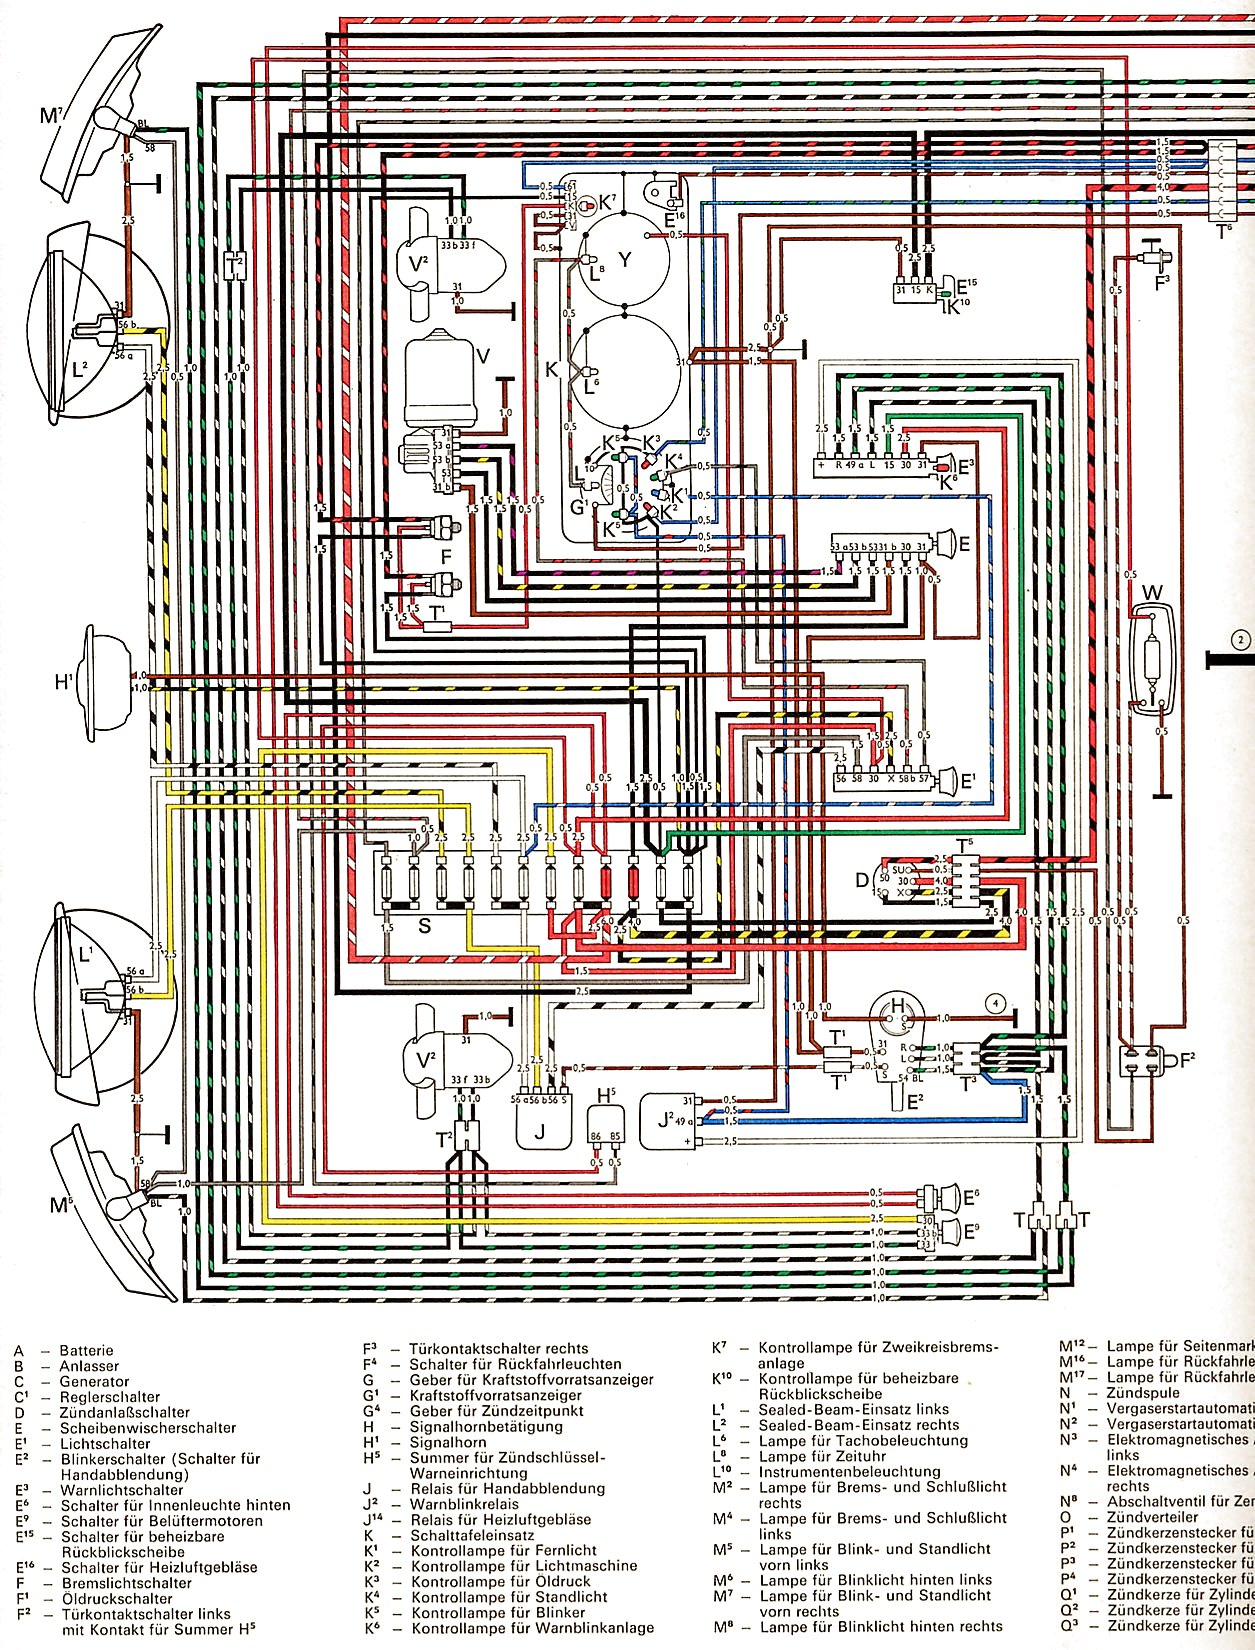 Transporter_USA_from_August_1971 1 how to read vw wiring diagrams basic motorcycle wiring diagram Wiring Harness Diagram at crackthecode.co